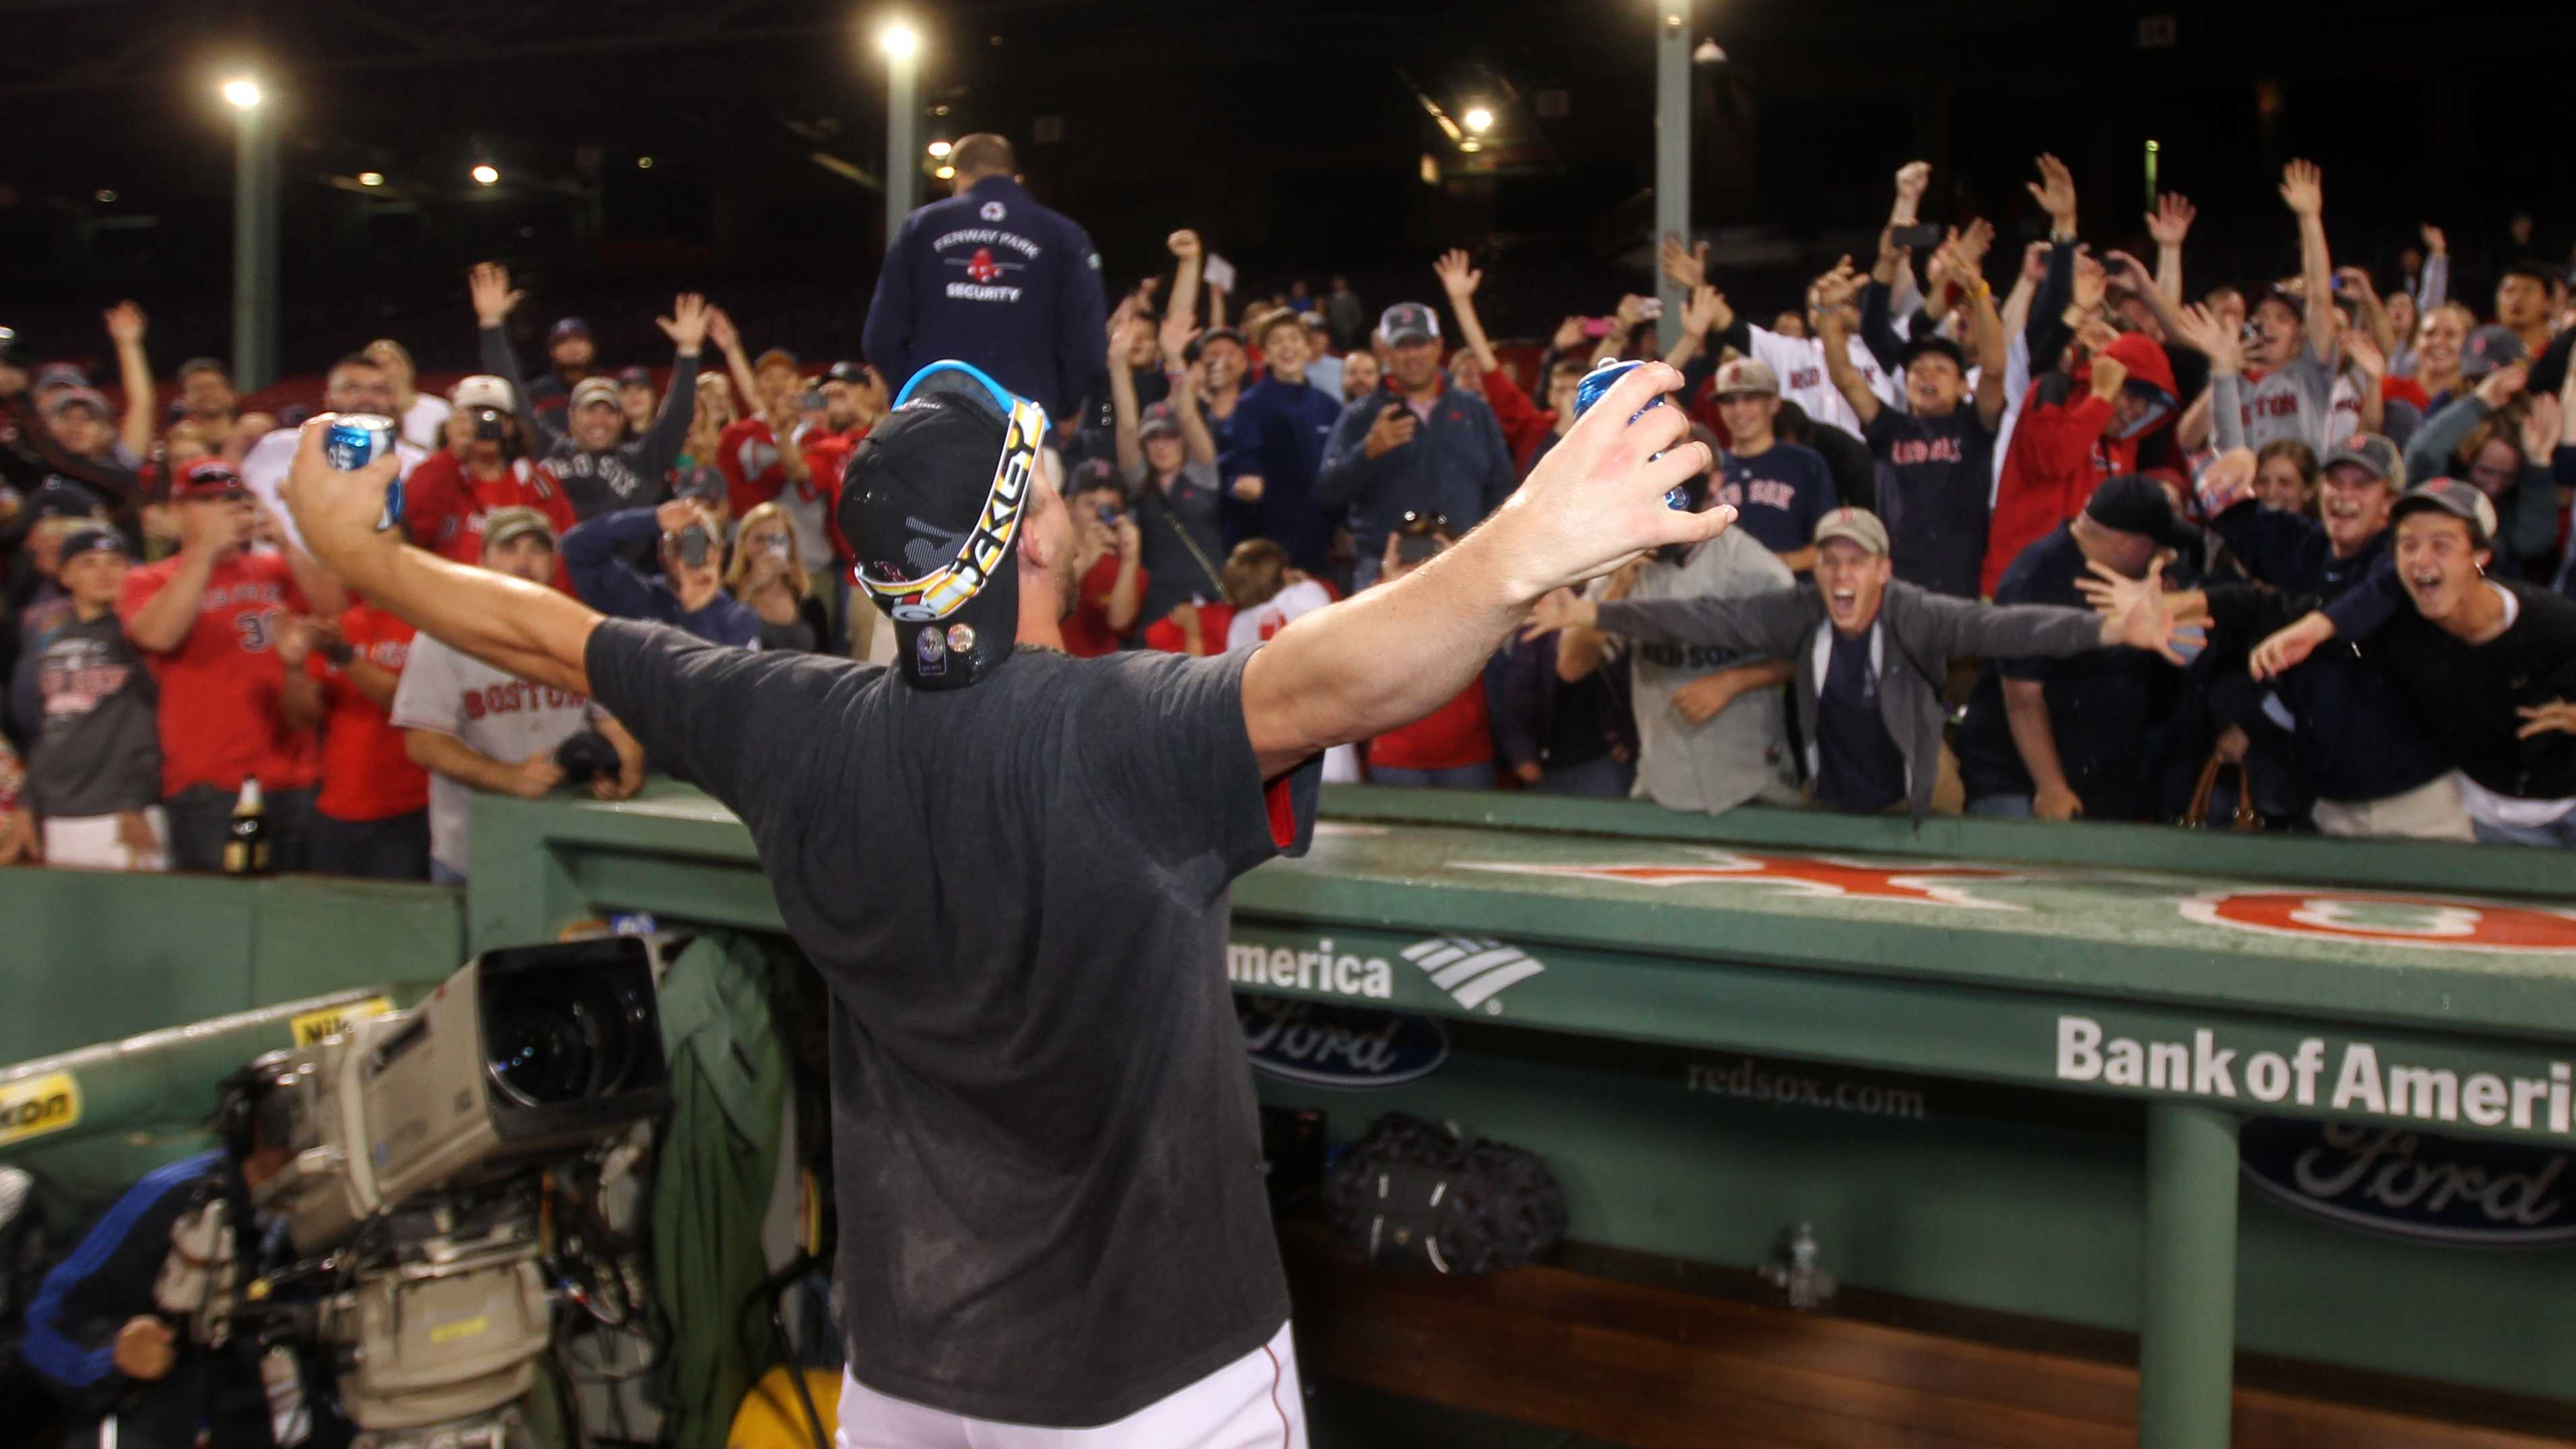 Boston Red Sox catcher Ryan Lavarnway celebrates with fans after the Red Sox clinched the AL East title with a 6-3 win over the Toronto Blue Jays in a baseball game at Fenway Park, Friday, Sept. 20, 2013, in Boston.